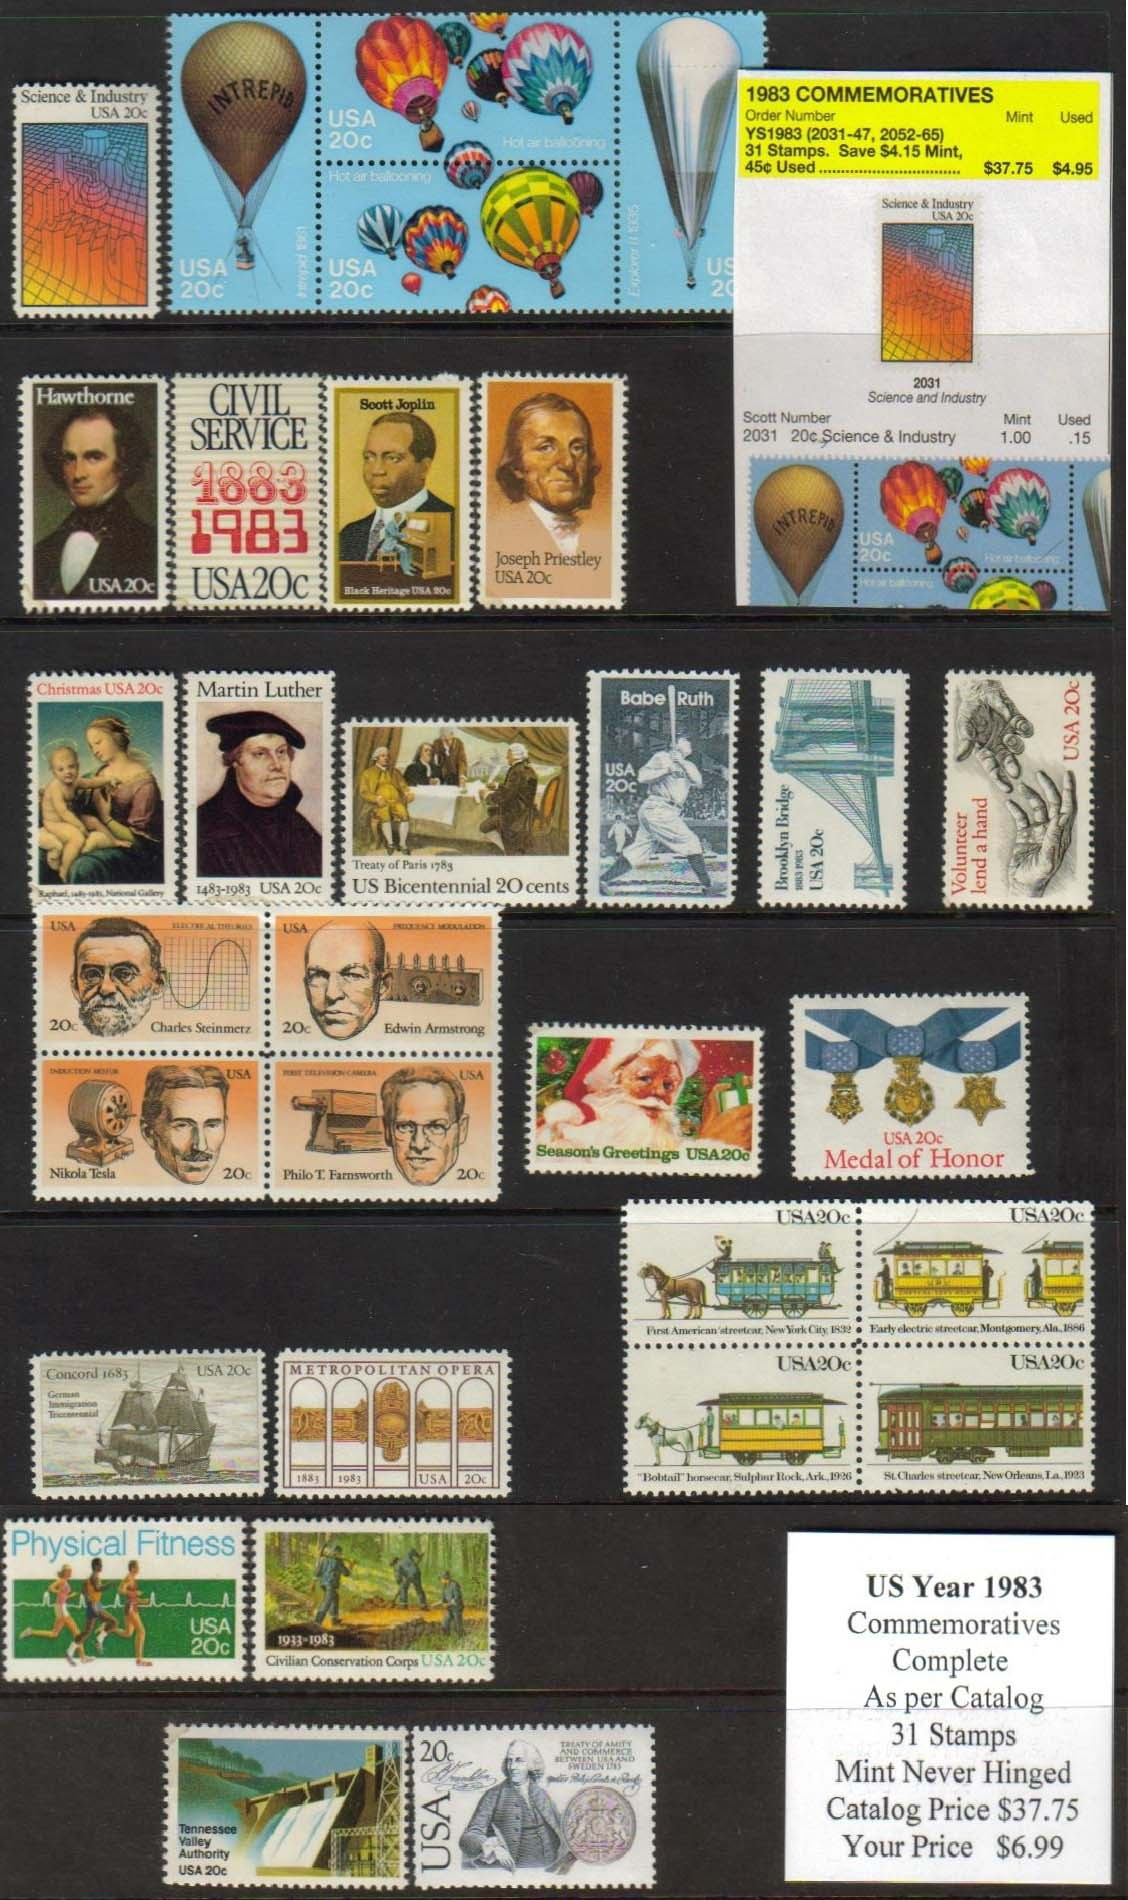 1983 COMMEMORATIVES, 31 STAMPS